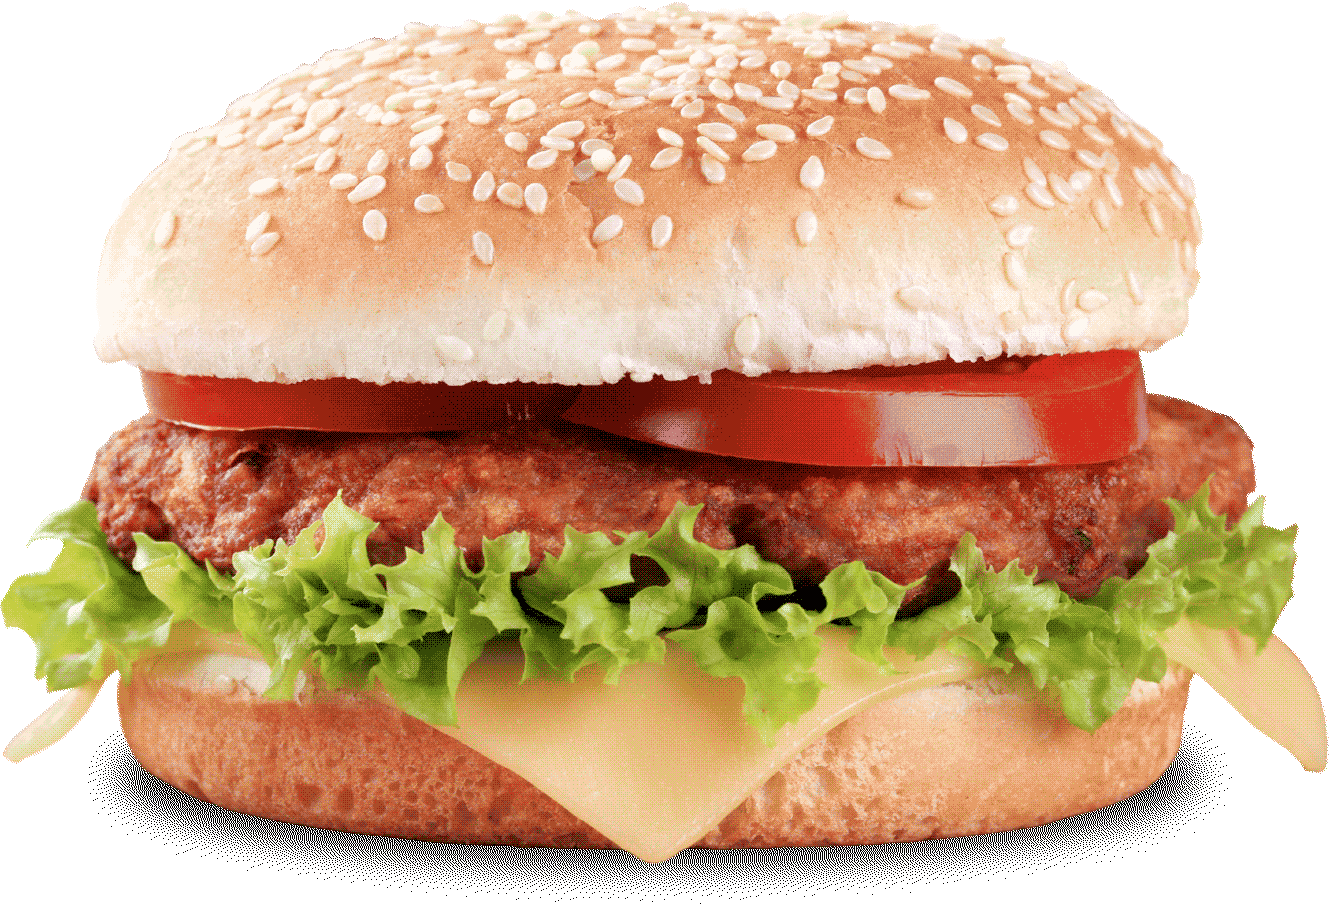 Burger Pictures 14371 Hd Wallpapers in Food n Drinks   Imagescicom 1330x909